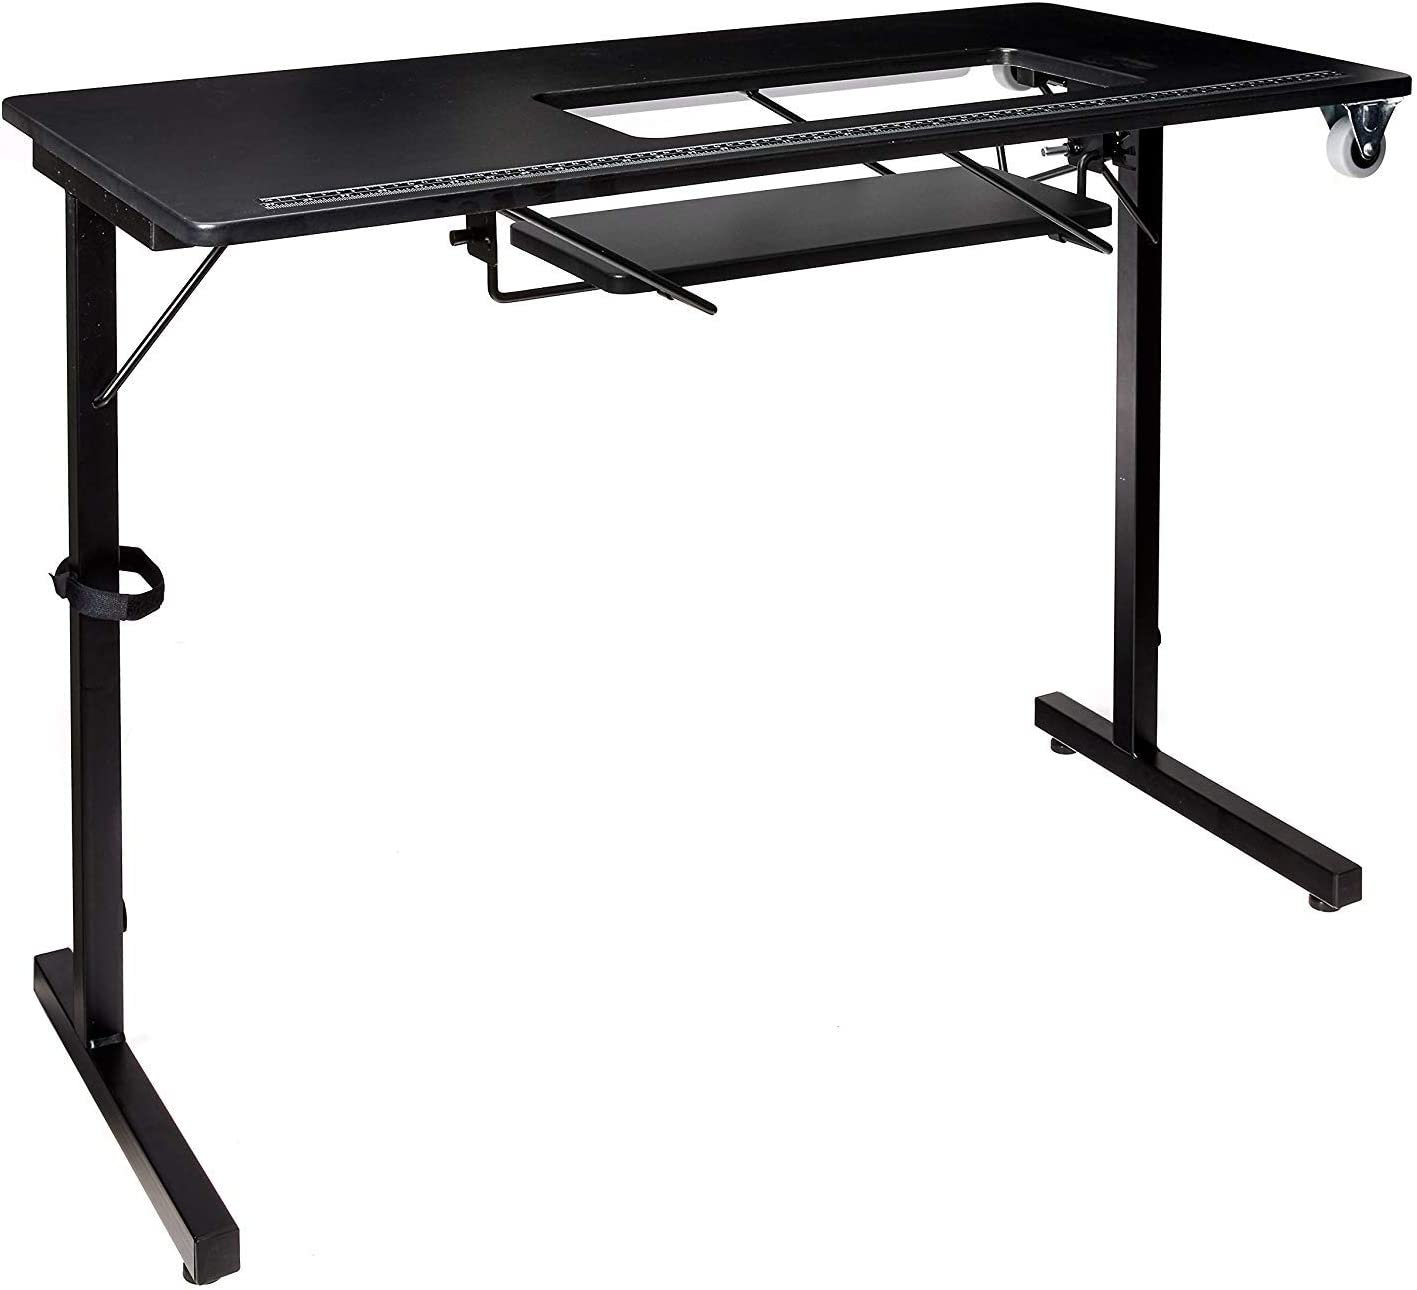 SewStation 101 Portable Folding Sewing Table